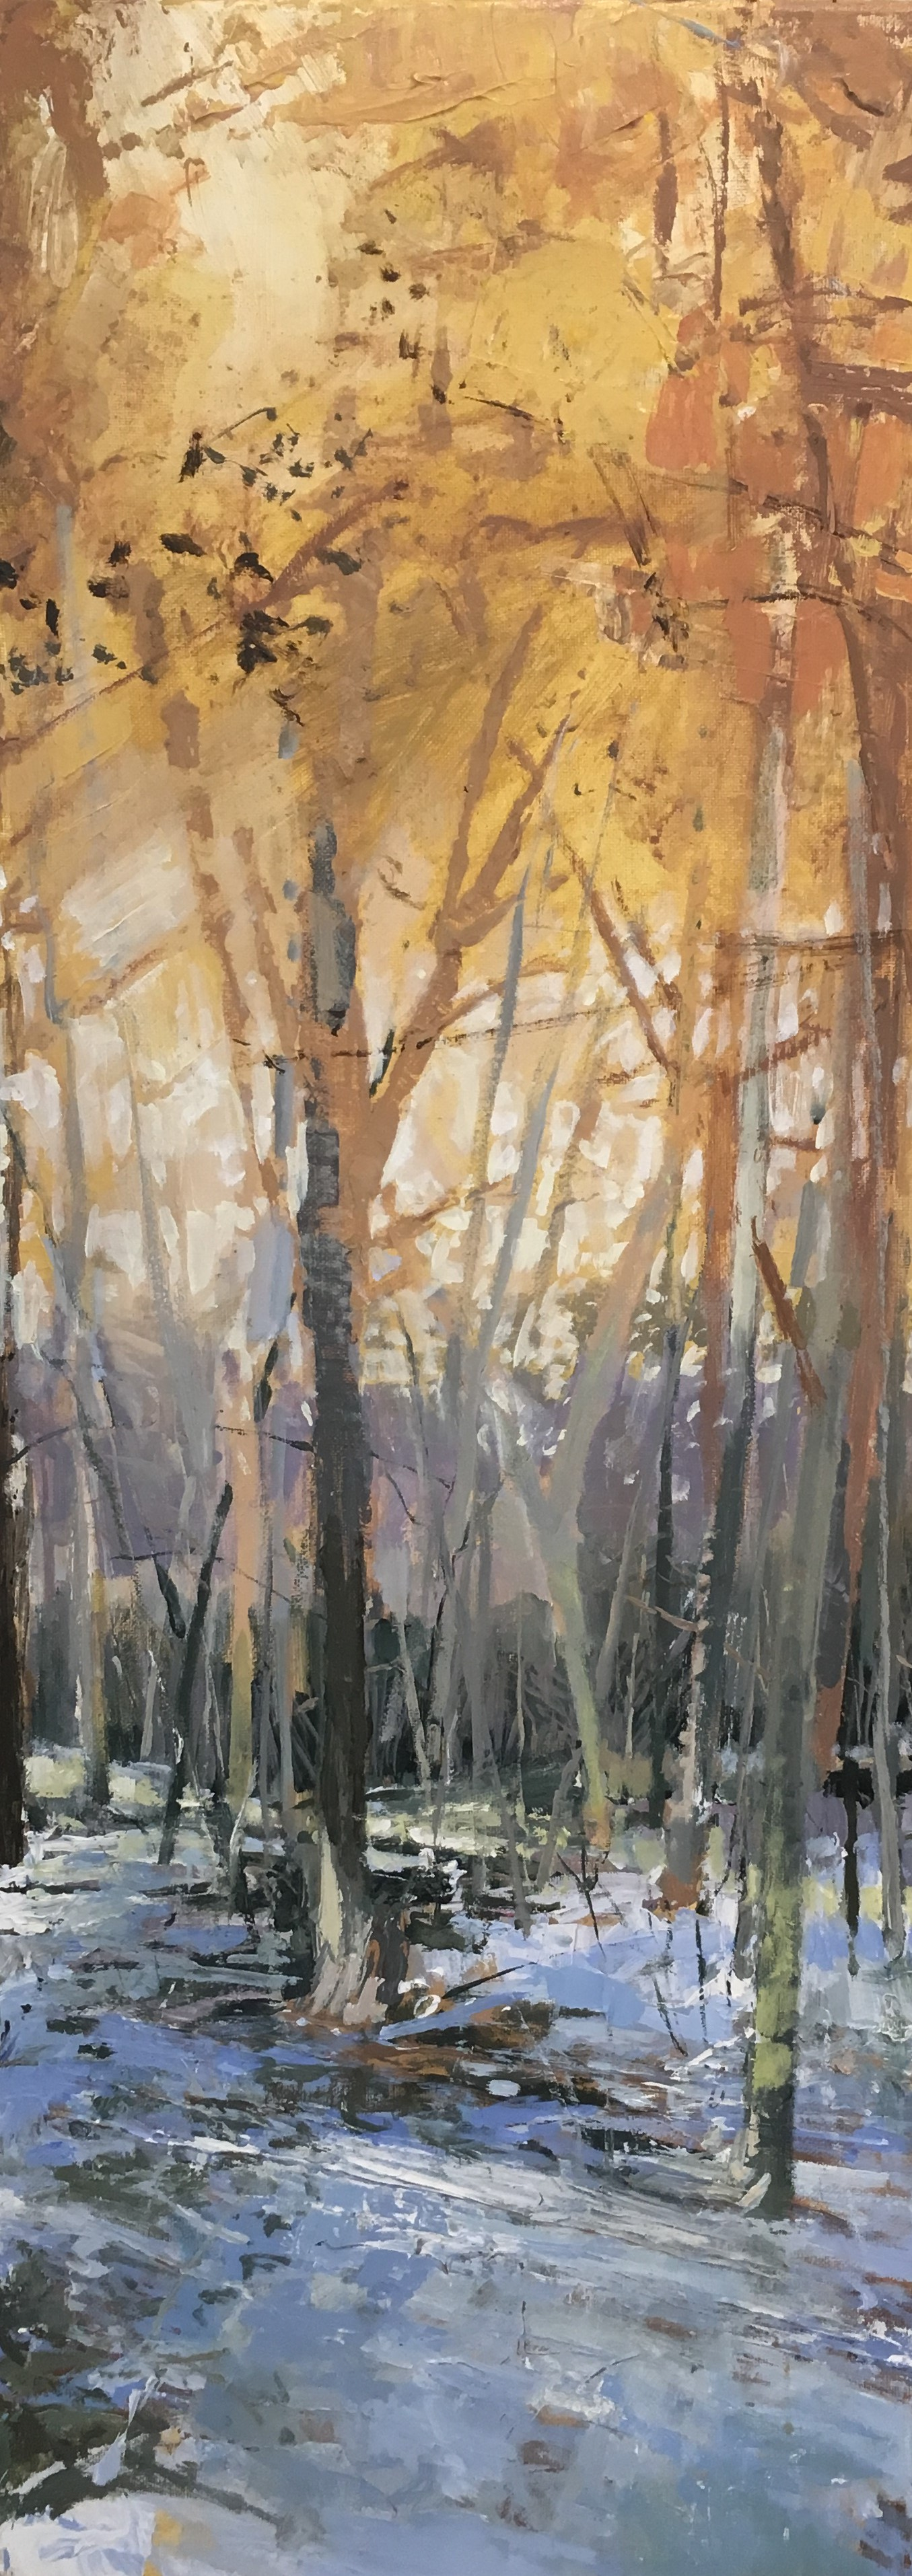 Queenswood, Acrylic on canvas, 30 x 80 cm, £750